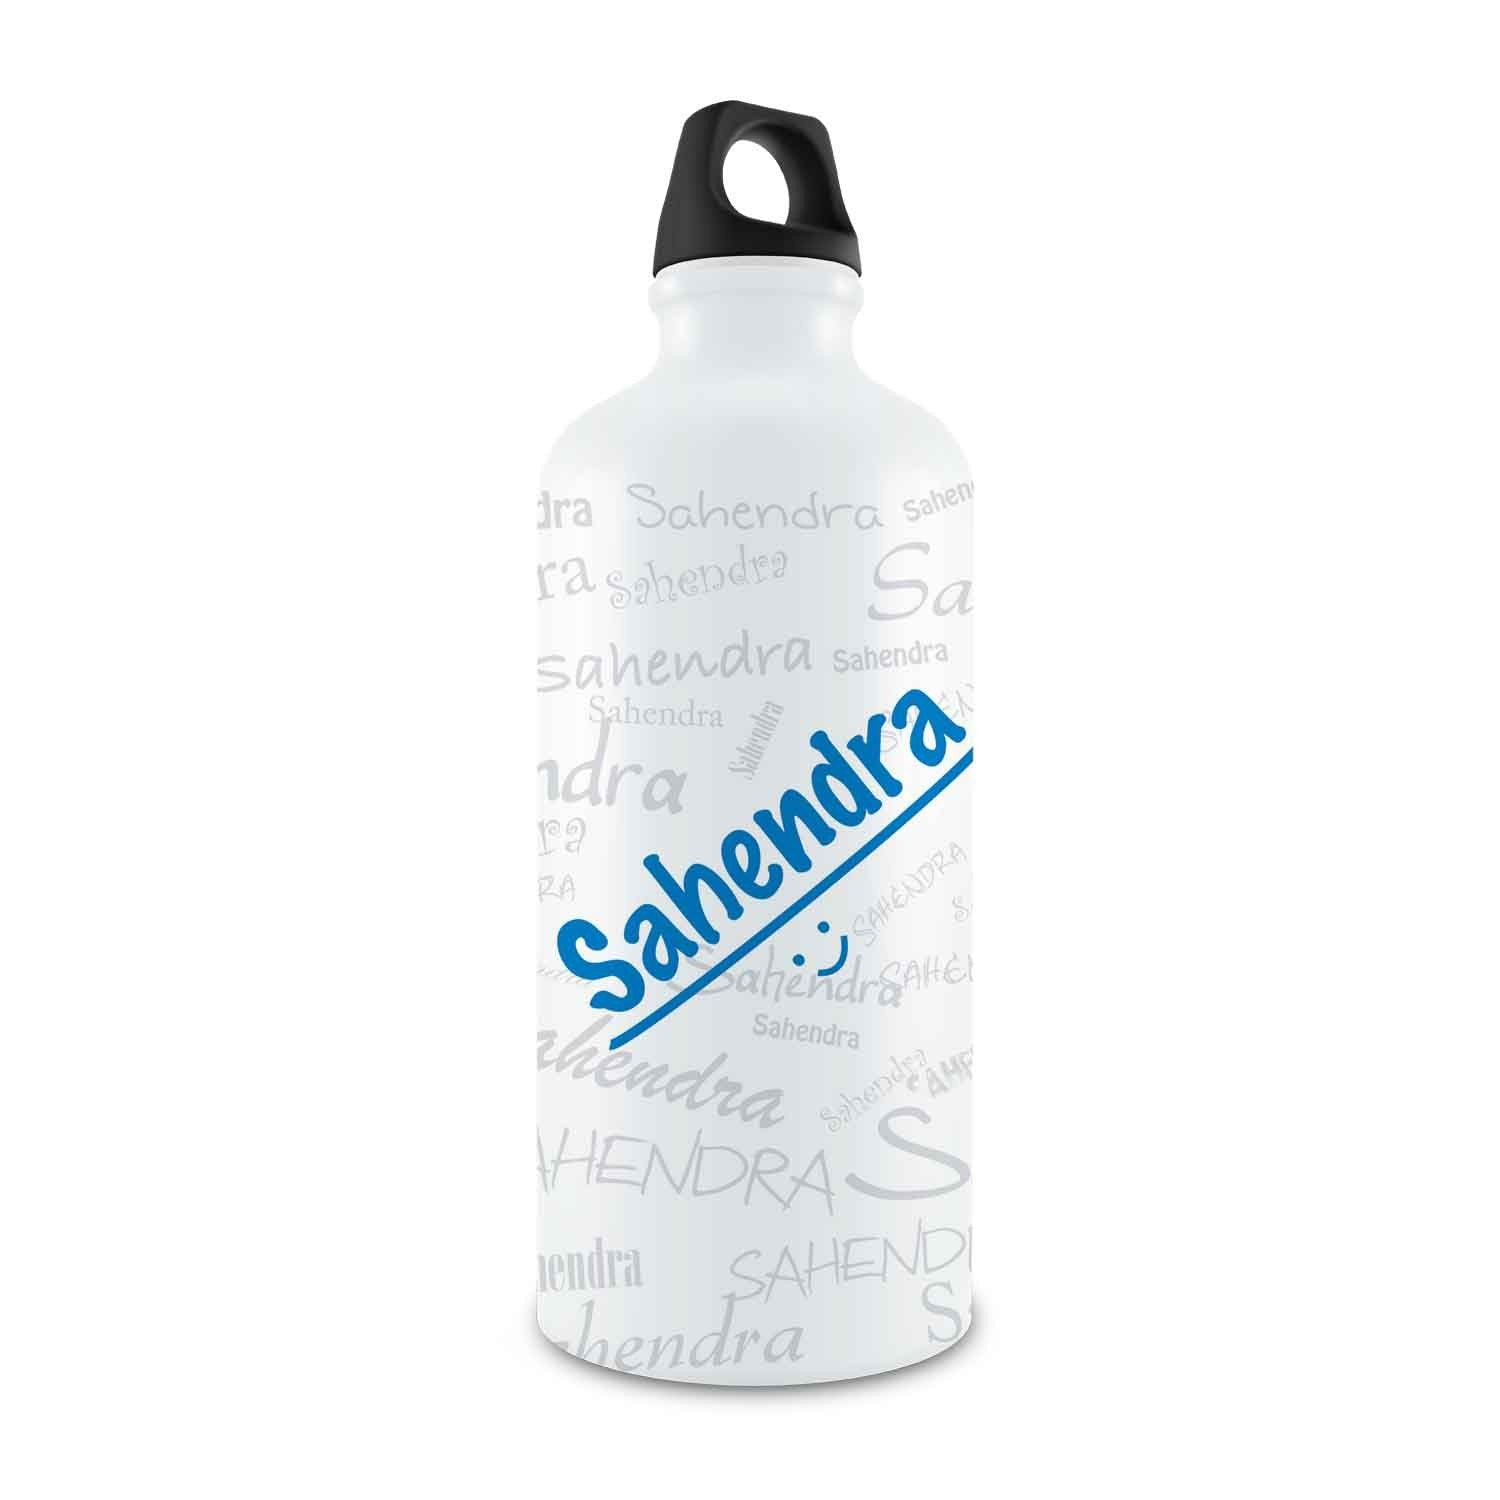 Me Graffiti Bottle - Sahendra